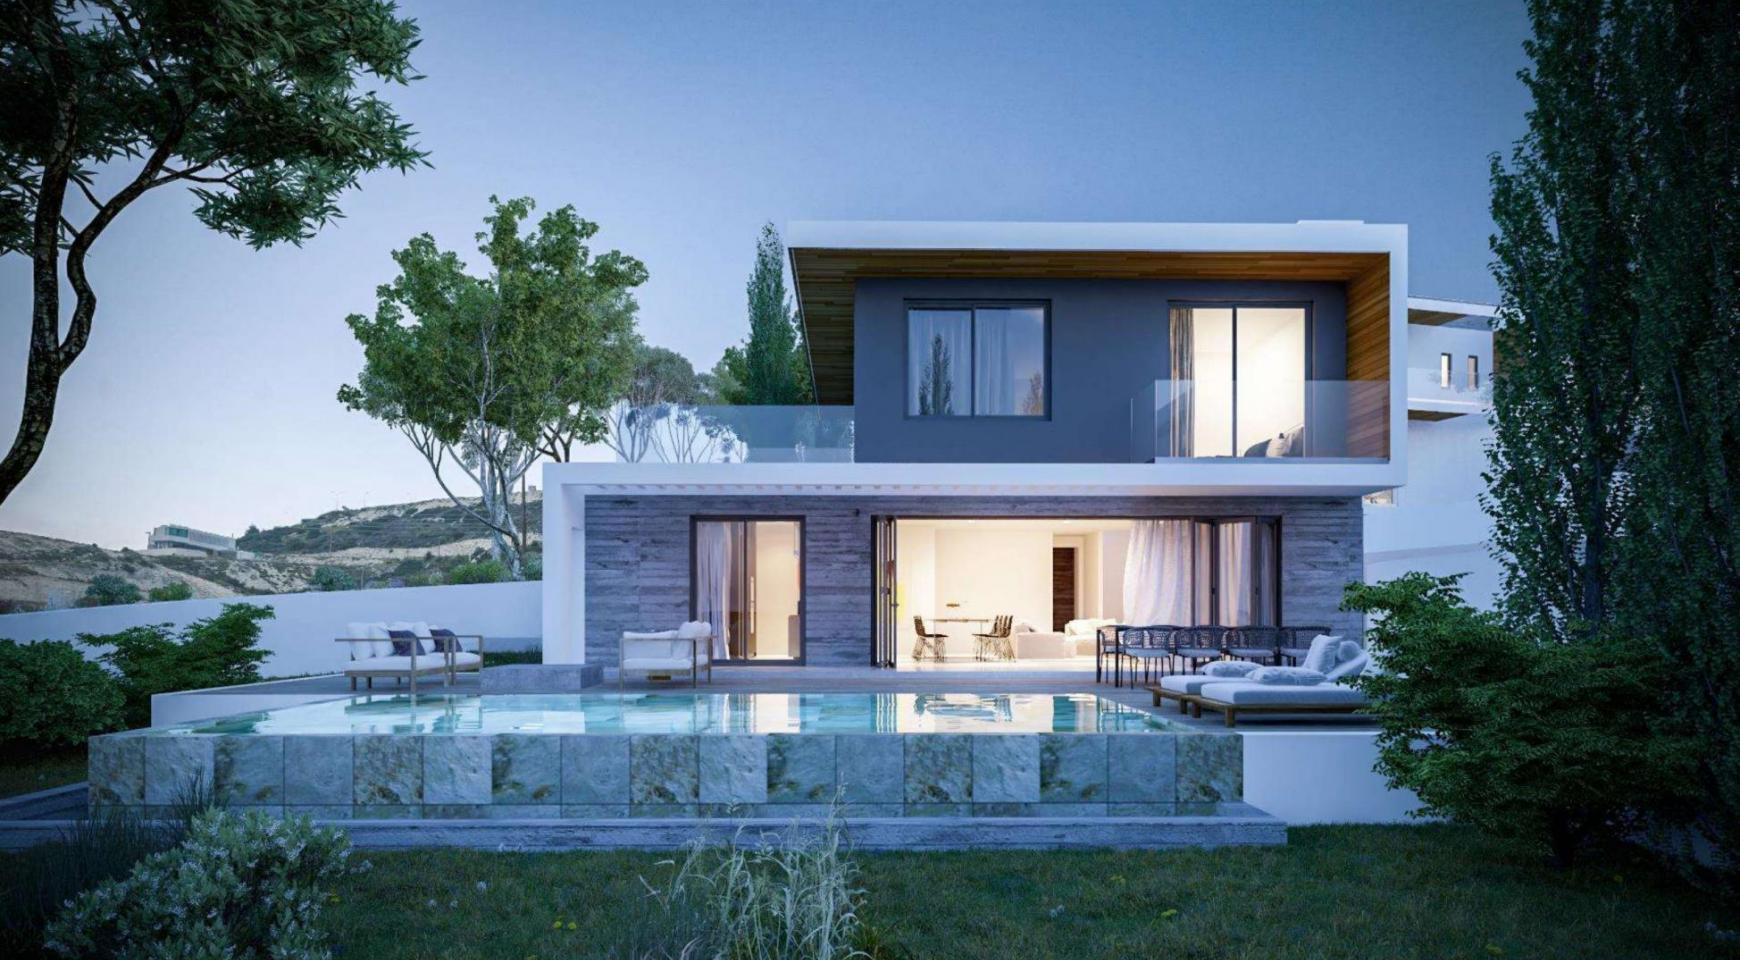 3 Bedroom Villa in a New Project in Agios Tychonas - 2